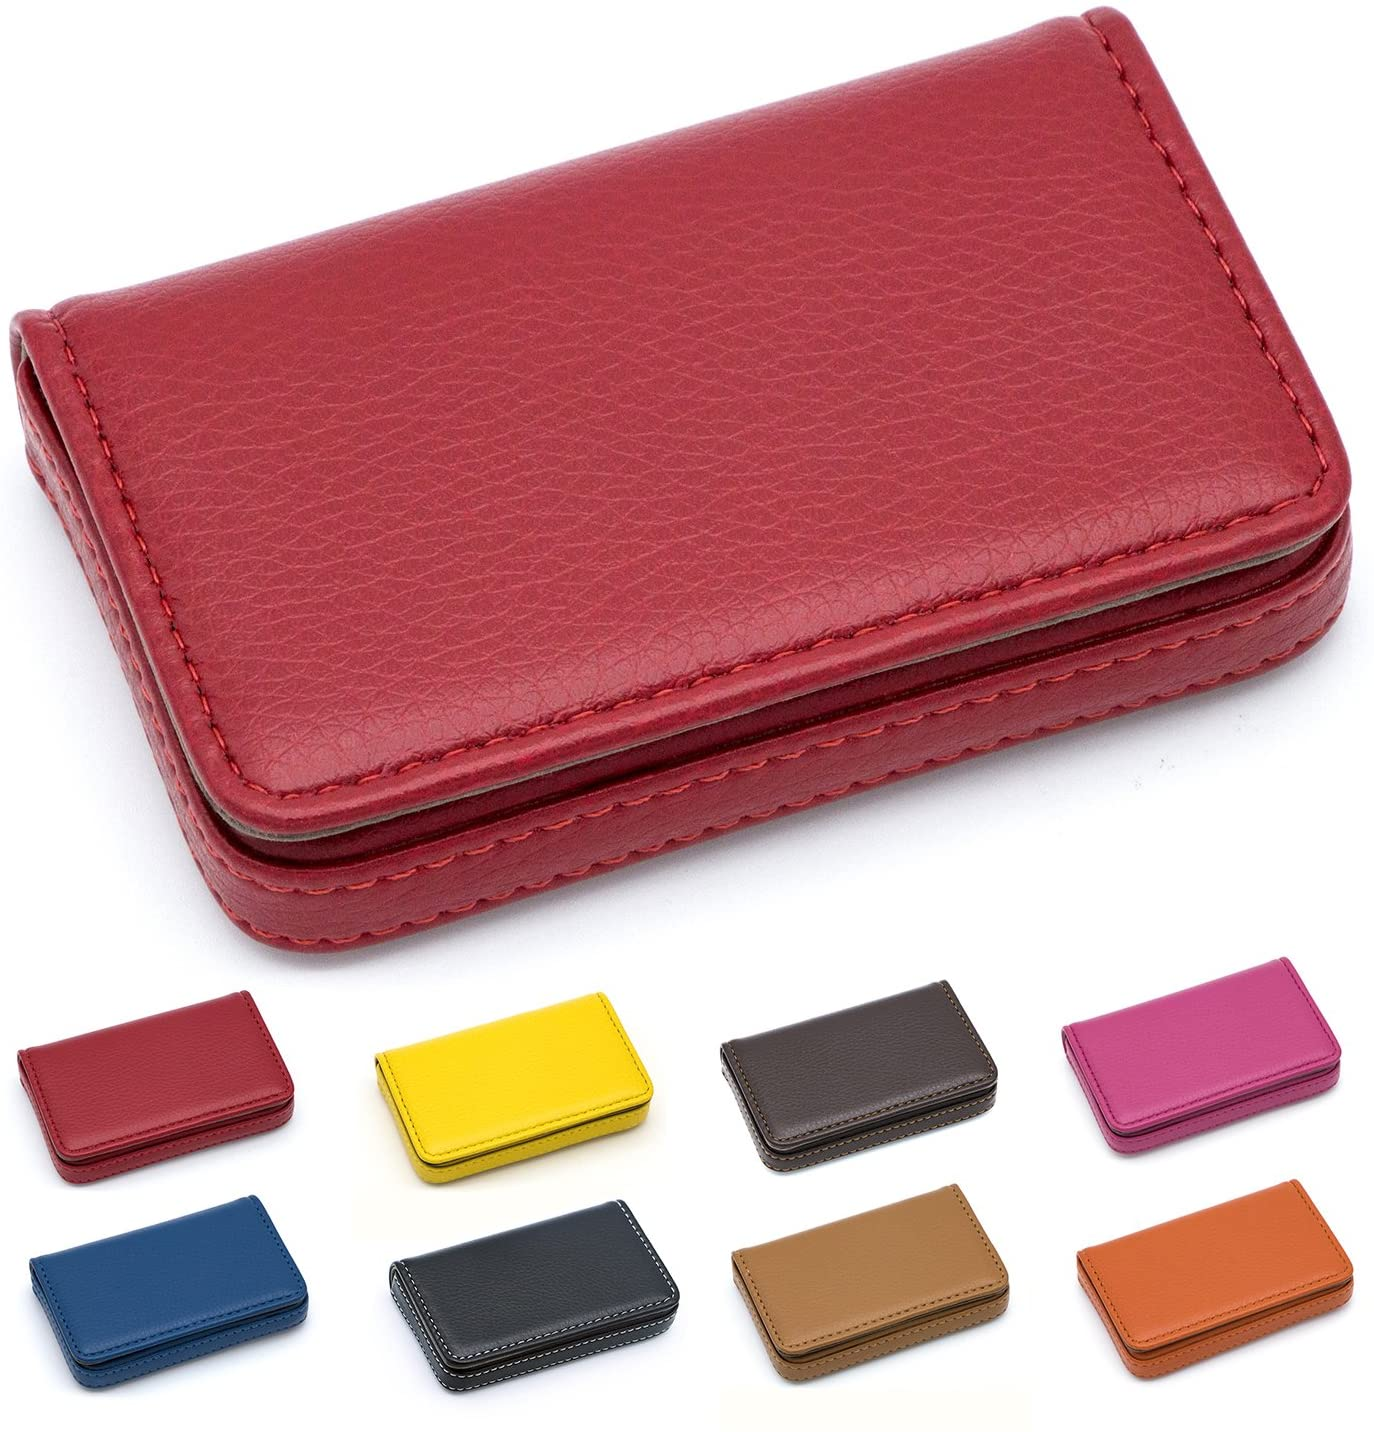 Padike Business Name Card Holder Luxury PU Leather,Business Name Card Holder Wallet Credit Card ID Case/Holder for Men & Women - Keep Your Business Cards Clean(Red)